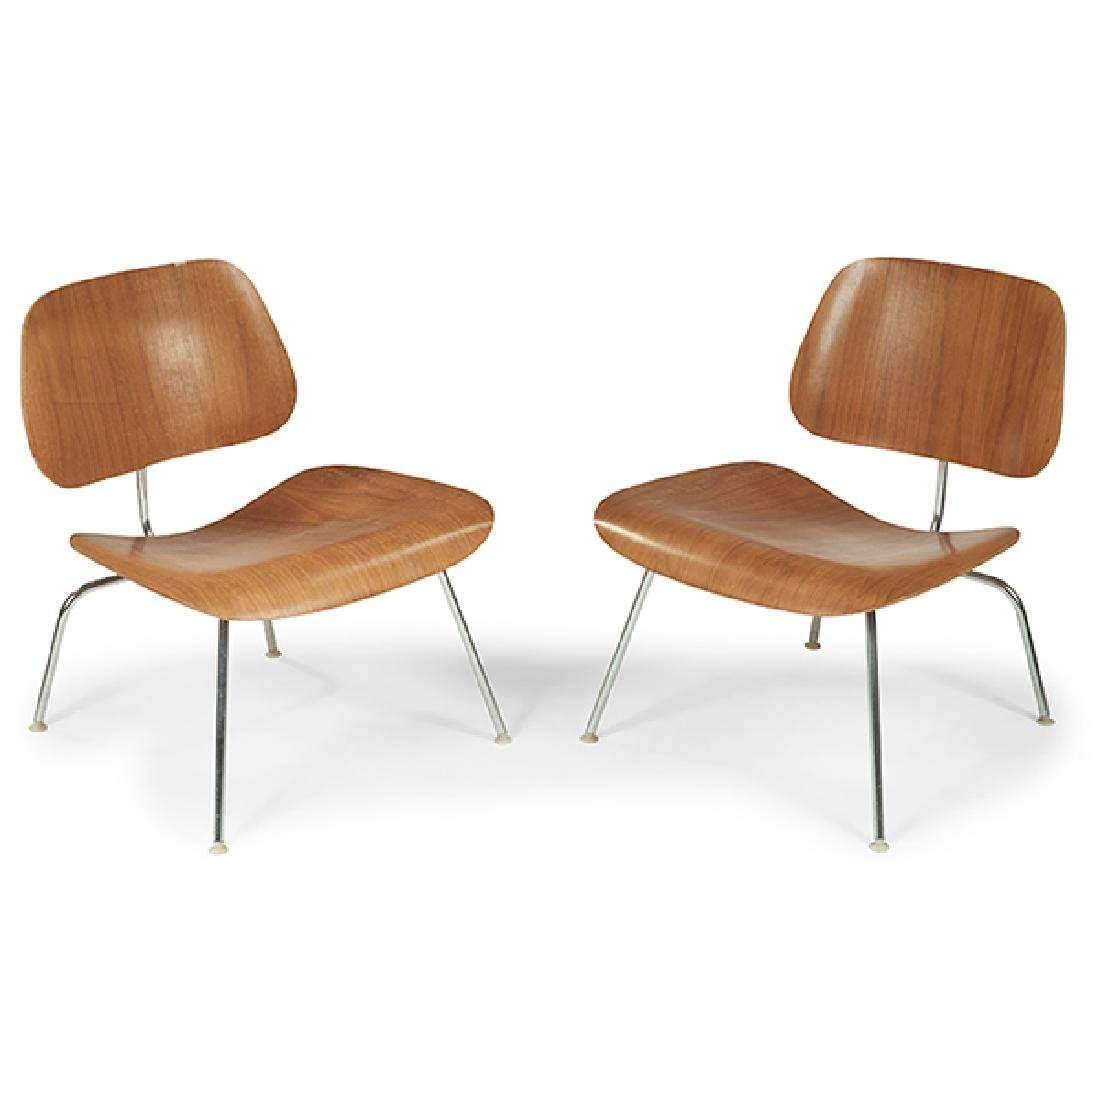 Charles Eames (1907-1978) & Ray Eames (1912-1988) for